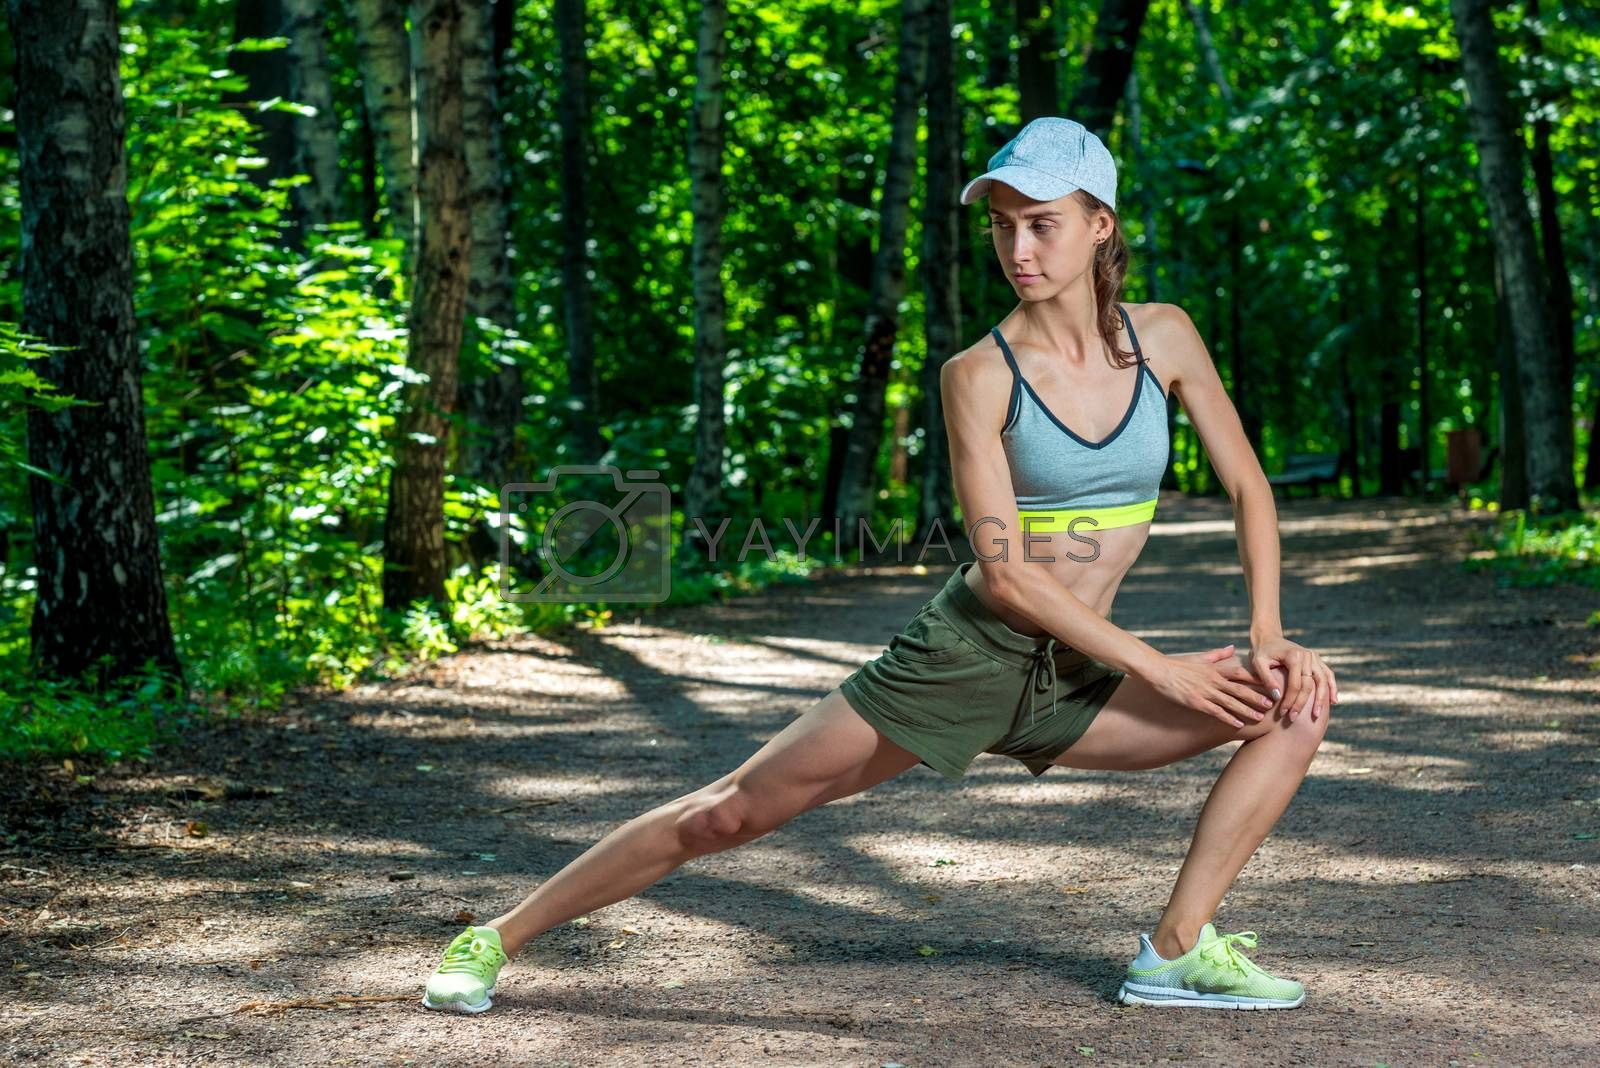 slim girl with a sporty figure performs exercises in a summer pa by Labunskiy K.